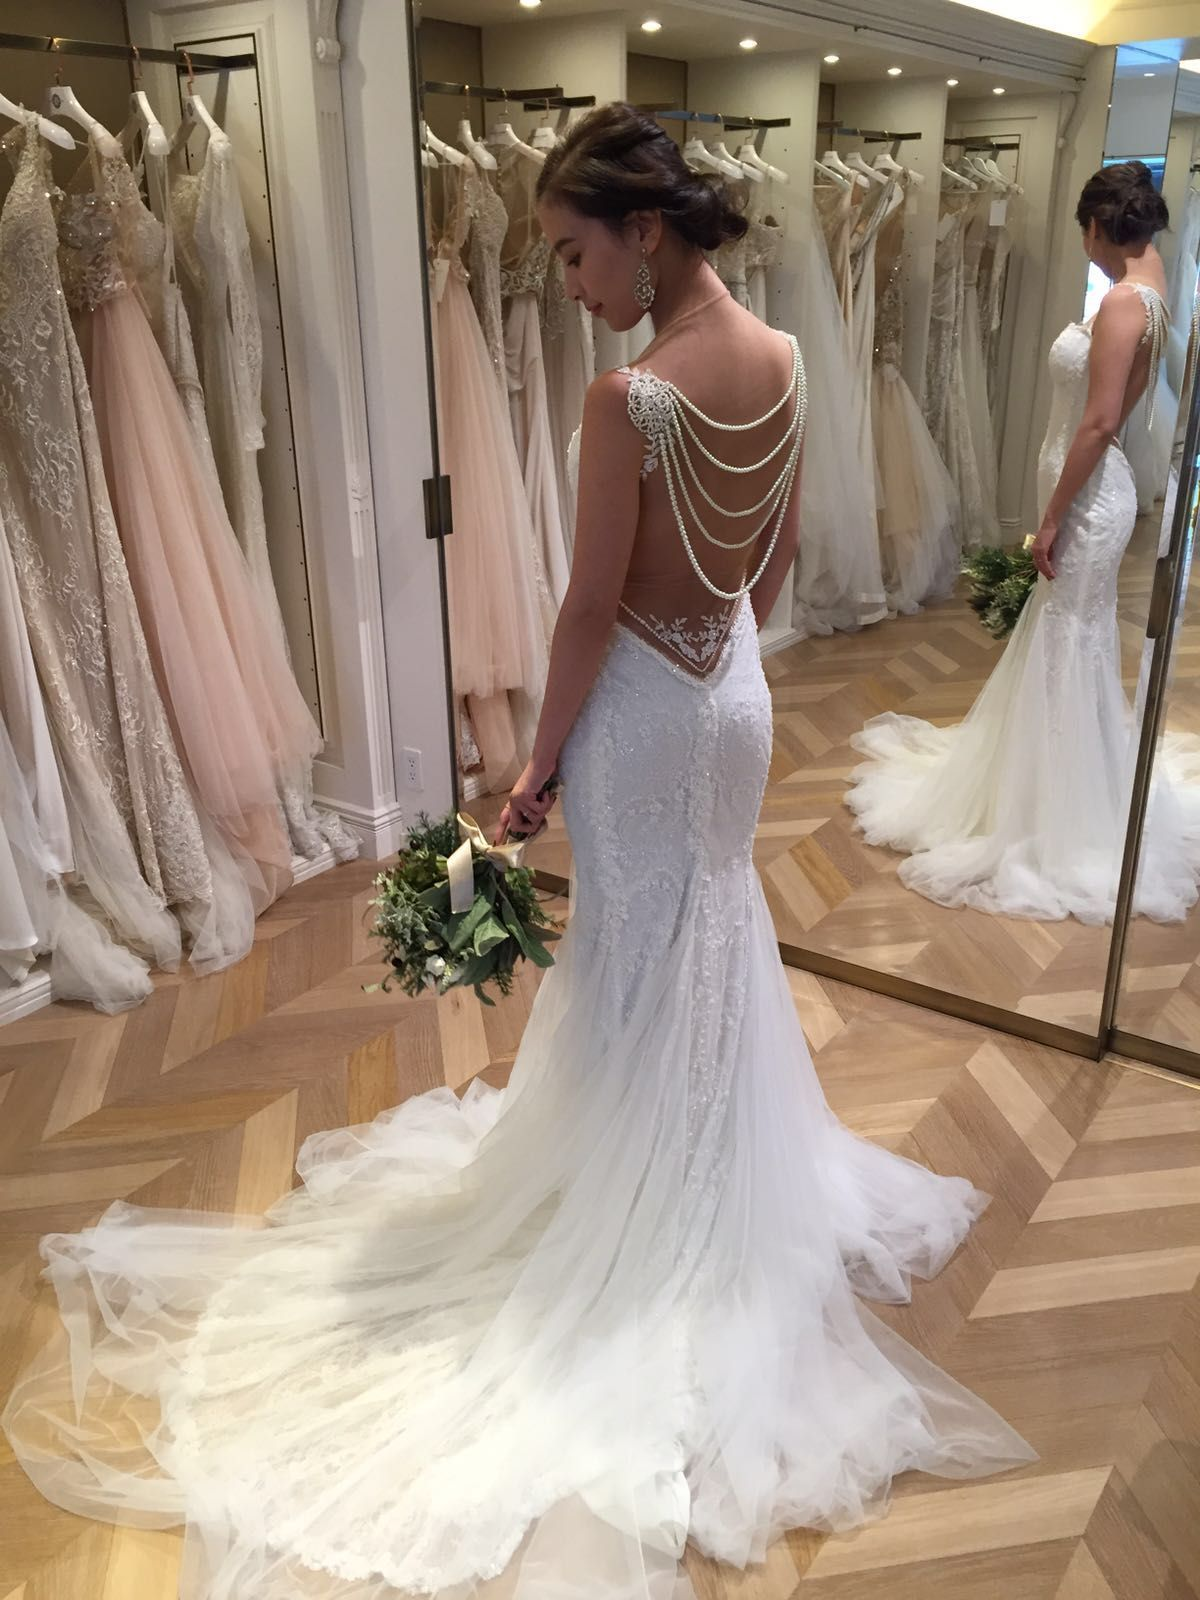 Bridal Fittings 101 Everything You Need To Know About Wedding Dress Alterations Wedding Dre Fall 2015 Wedding Dresses Naeem Khan Bridal 2015 Wedding Dresses